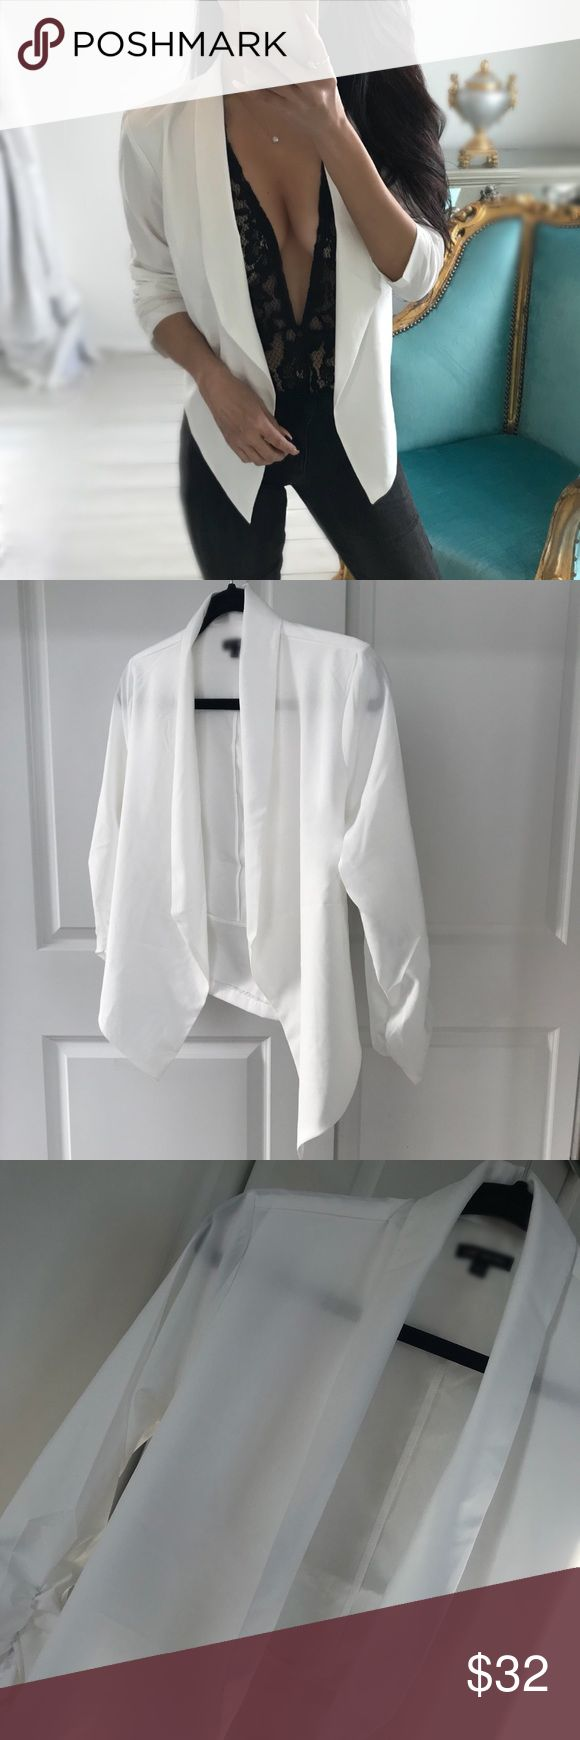 "🆕 LAST 2 ""BENTLEY"" Simple Chic Blazer White ✨One of my faves😌💕 A simple chic style blazer that is thin and not stuffy or thick. Open style, ruched 3/4 sleeve. Refreshing crisp white. Throw it on over any Bodysuit or tank👌✨ *Comes in black too.    🔒Price is firm 📸Modeling tag size: S •Measurements for M: 17.75"" chest/ 25.5"" longest point of front hem/ 21"" back hem •Material: 94 polyester 6 spandex • Tip: True to size with nice loose fit  👉 For convenient checkout, purchase directly…"